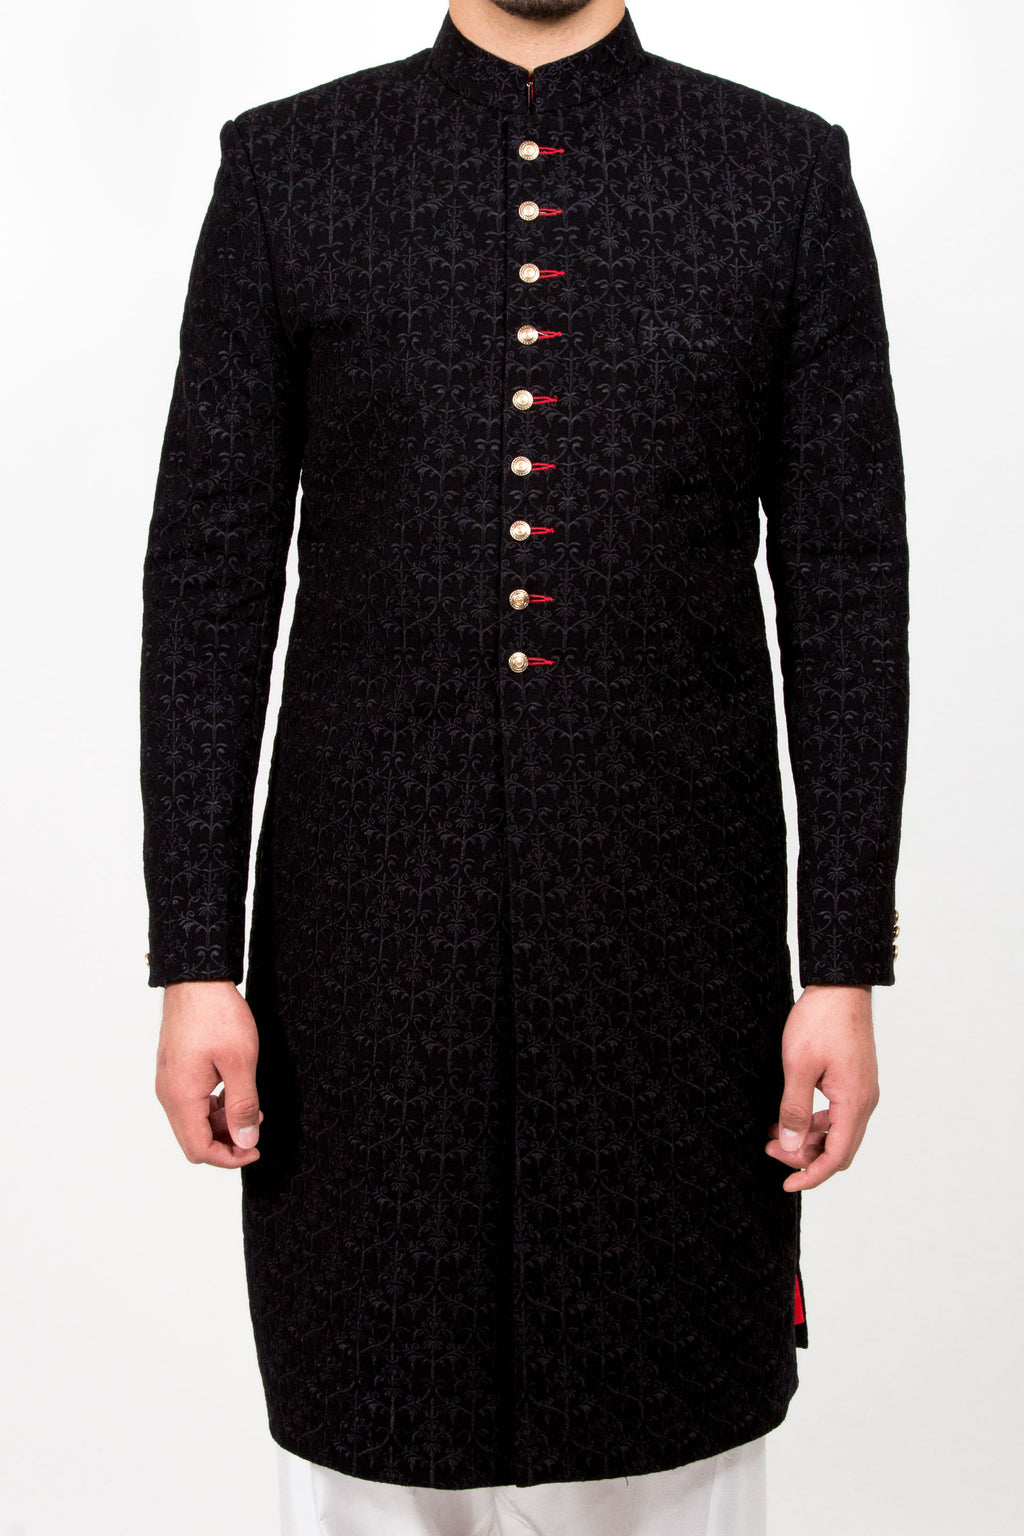 FSK-001 Embroidered Sherwani - Komal's